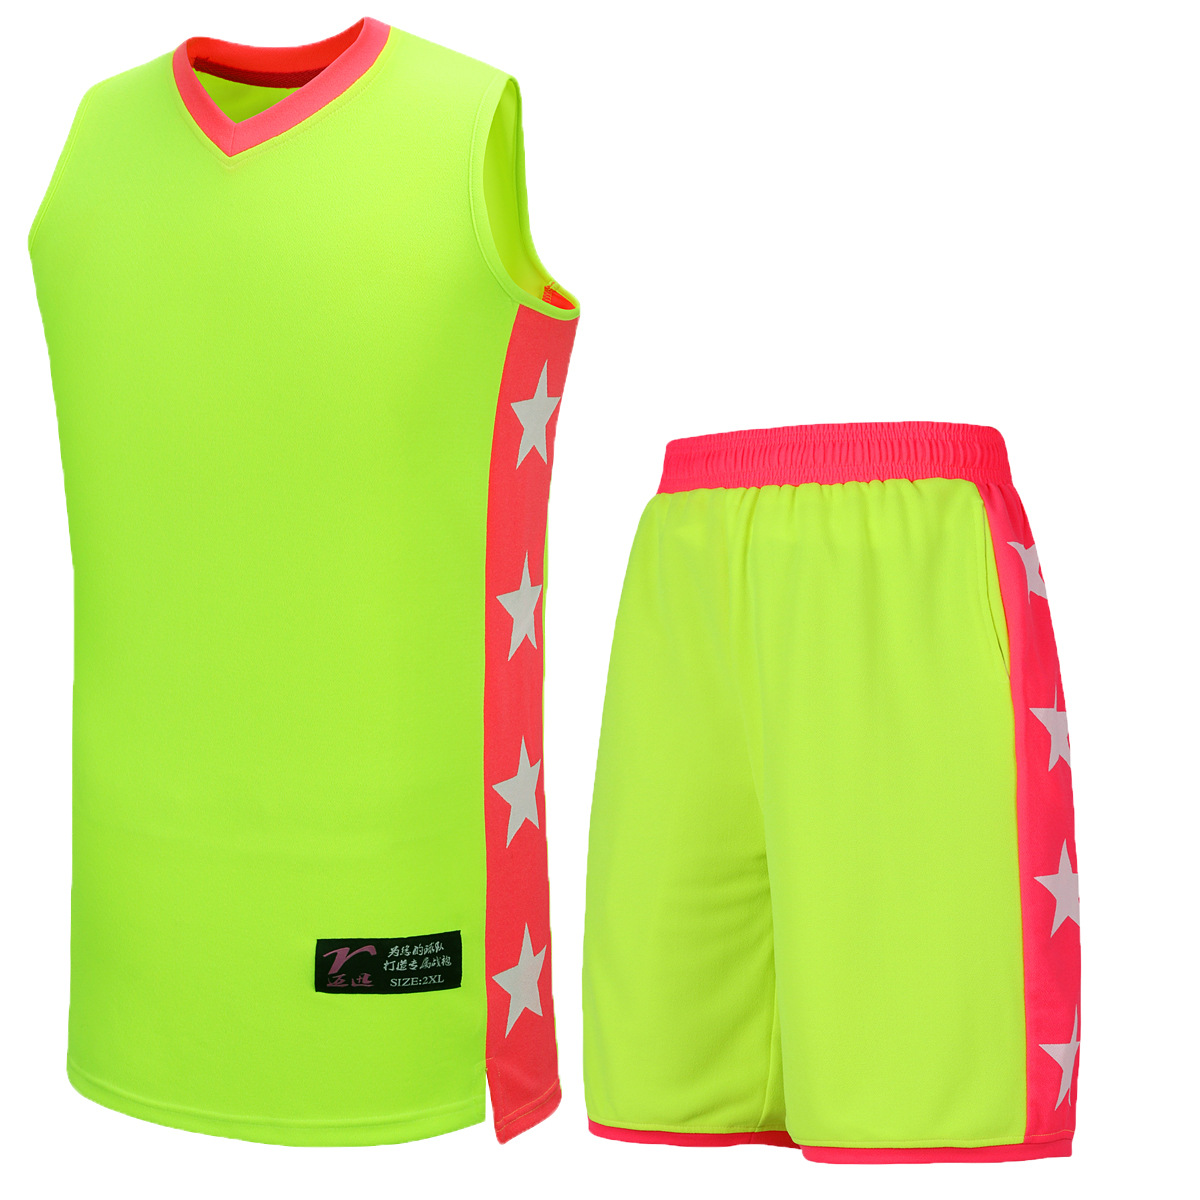 Manufacturers Of Low Selling 2015 Maixun New Jersey Diy Personalized Custom Service Game Basketball Training Vest(China (Mainland))